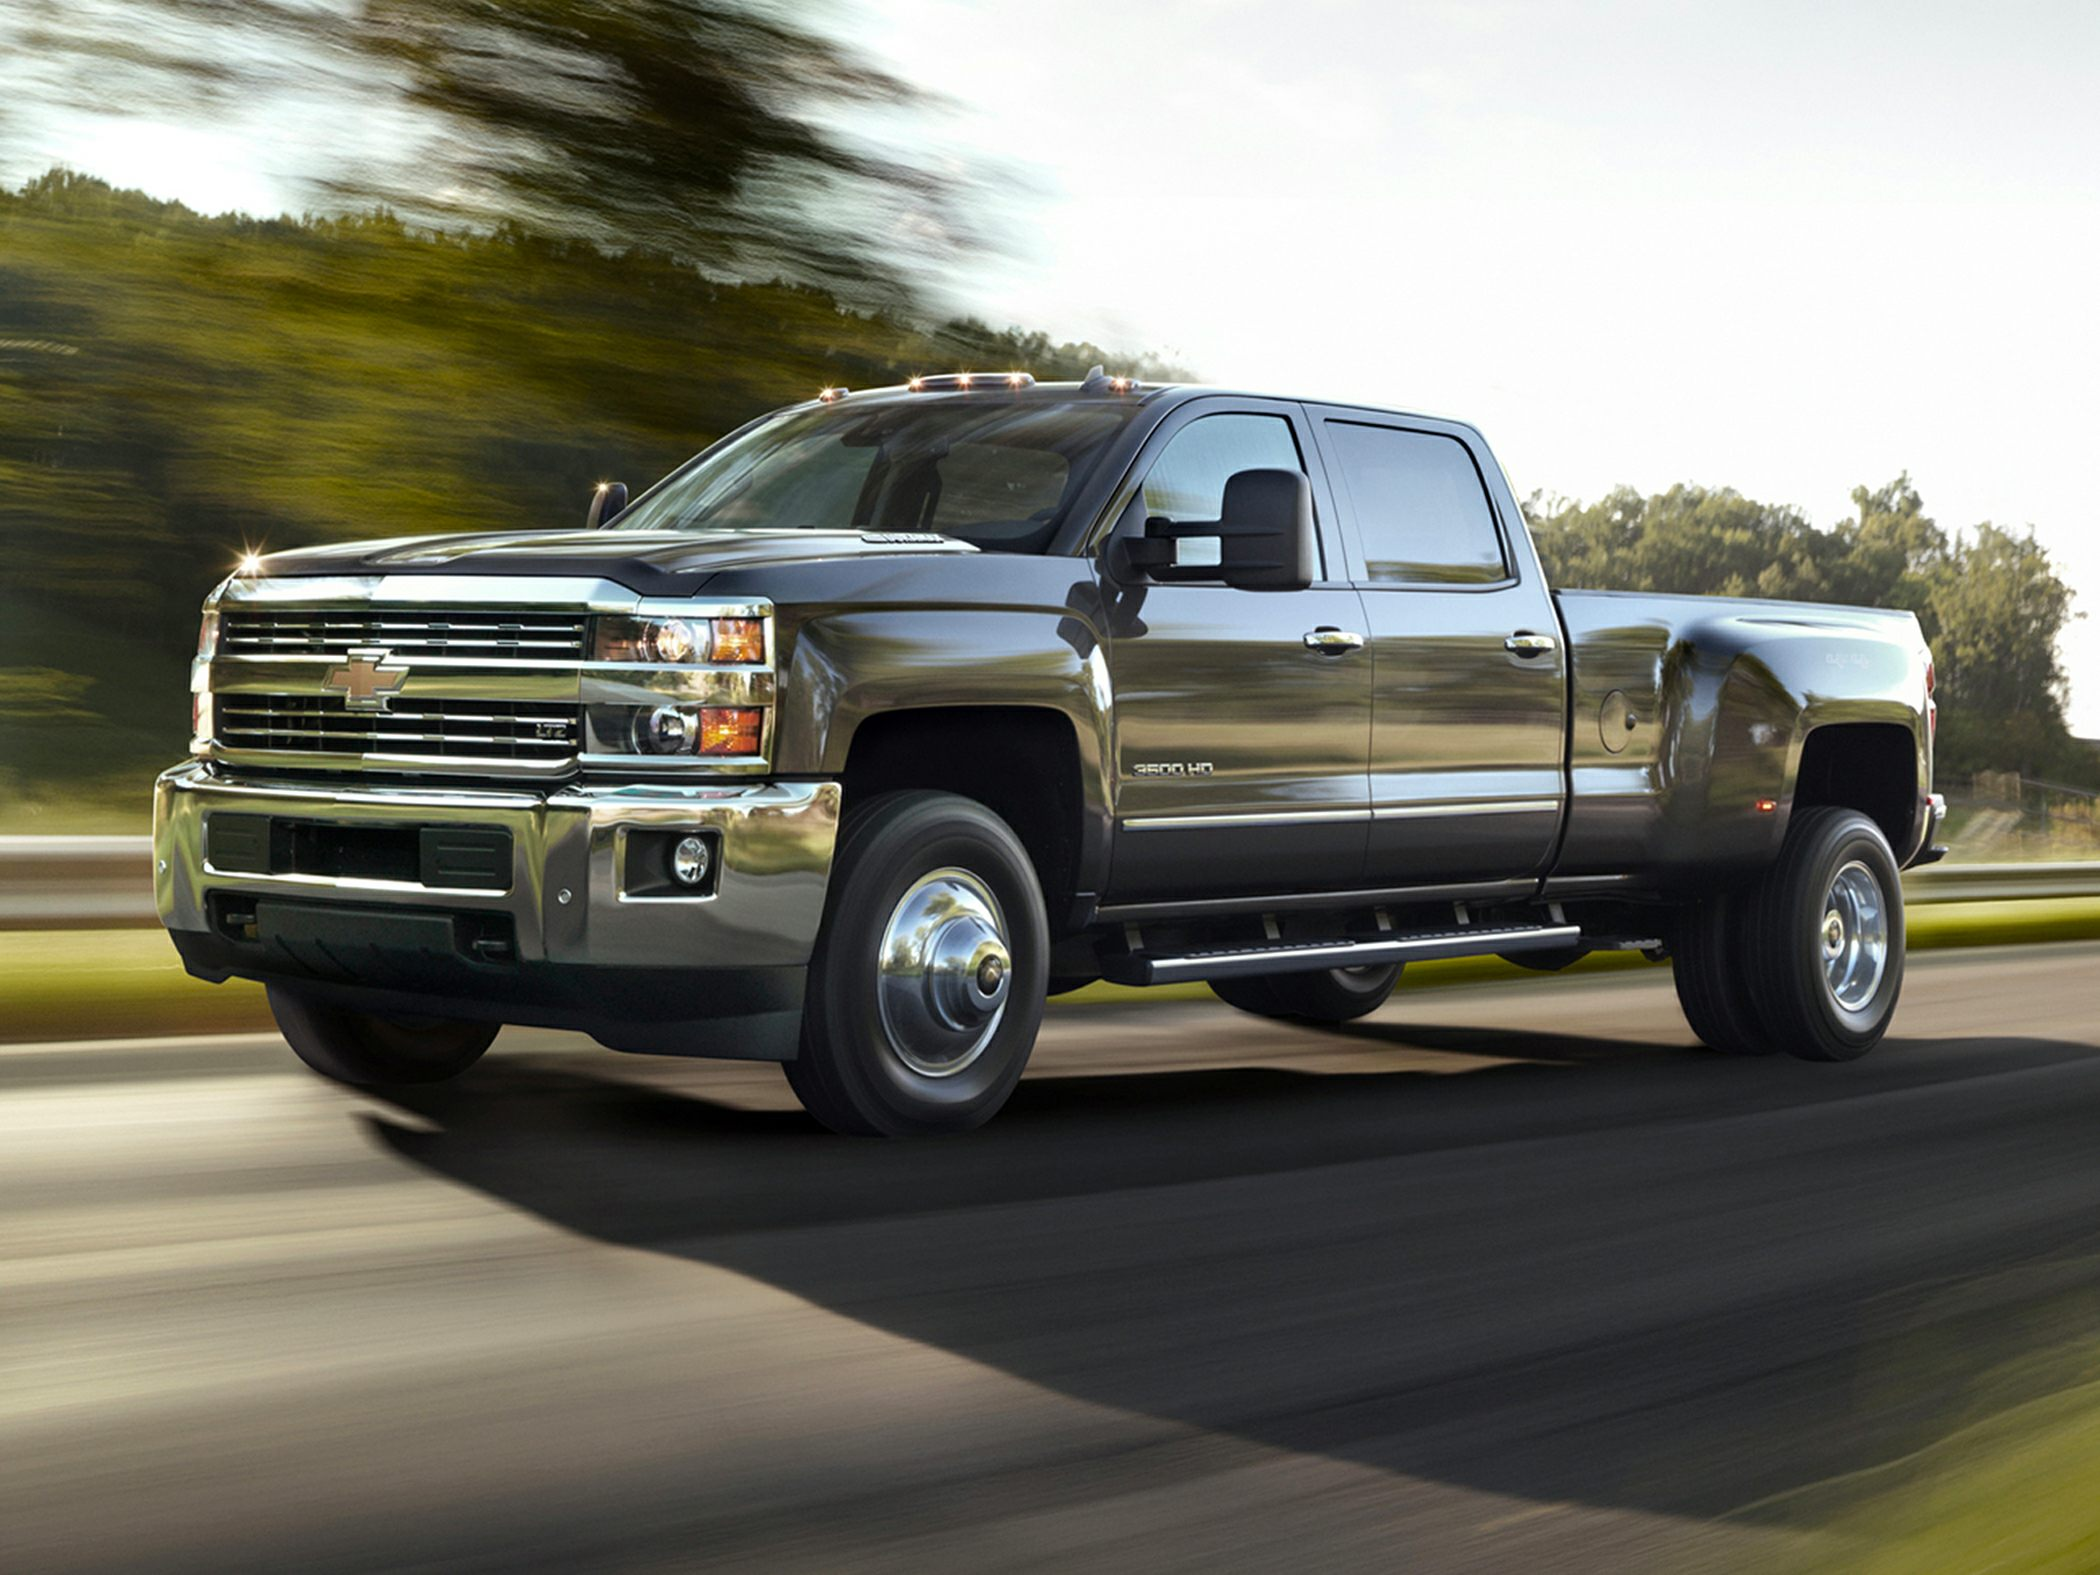 2017 chevrolet silverado 3500hd deals prices incentives leases overview carsdirect. Black Bedroom Furniture Sets. Home Design Ideas